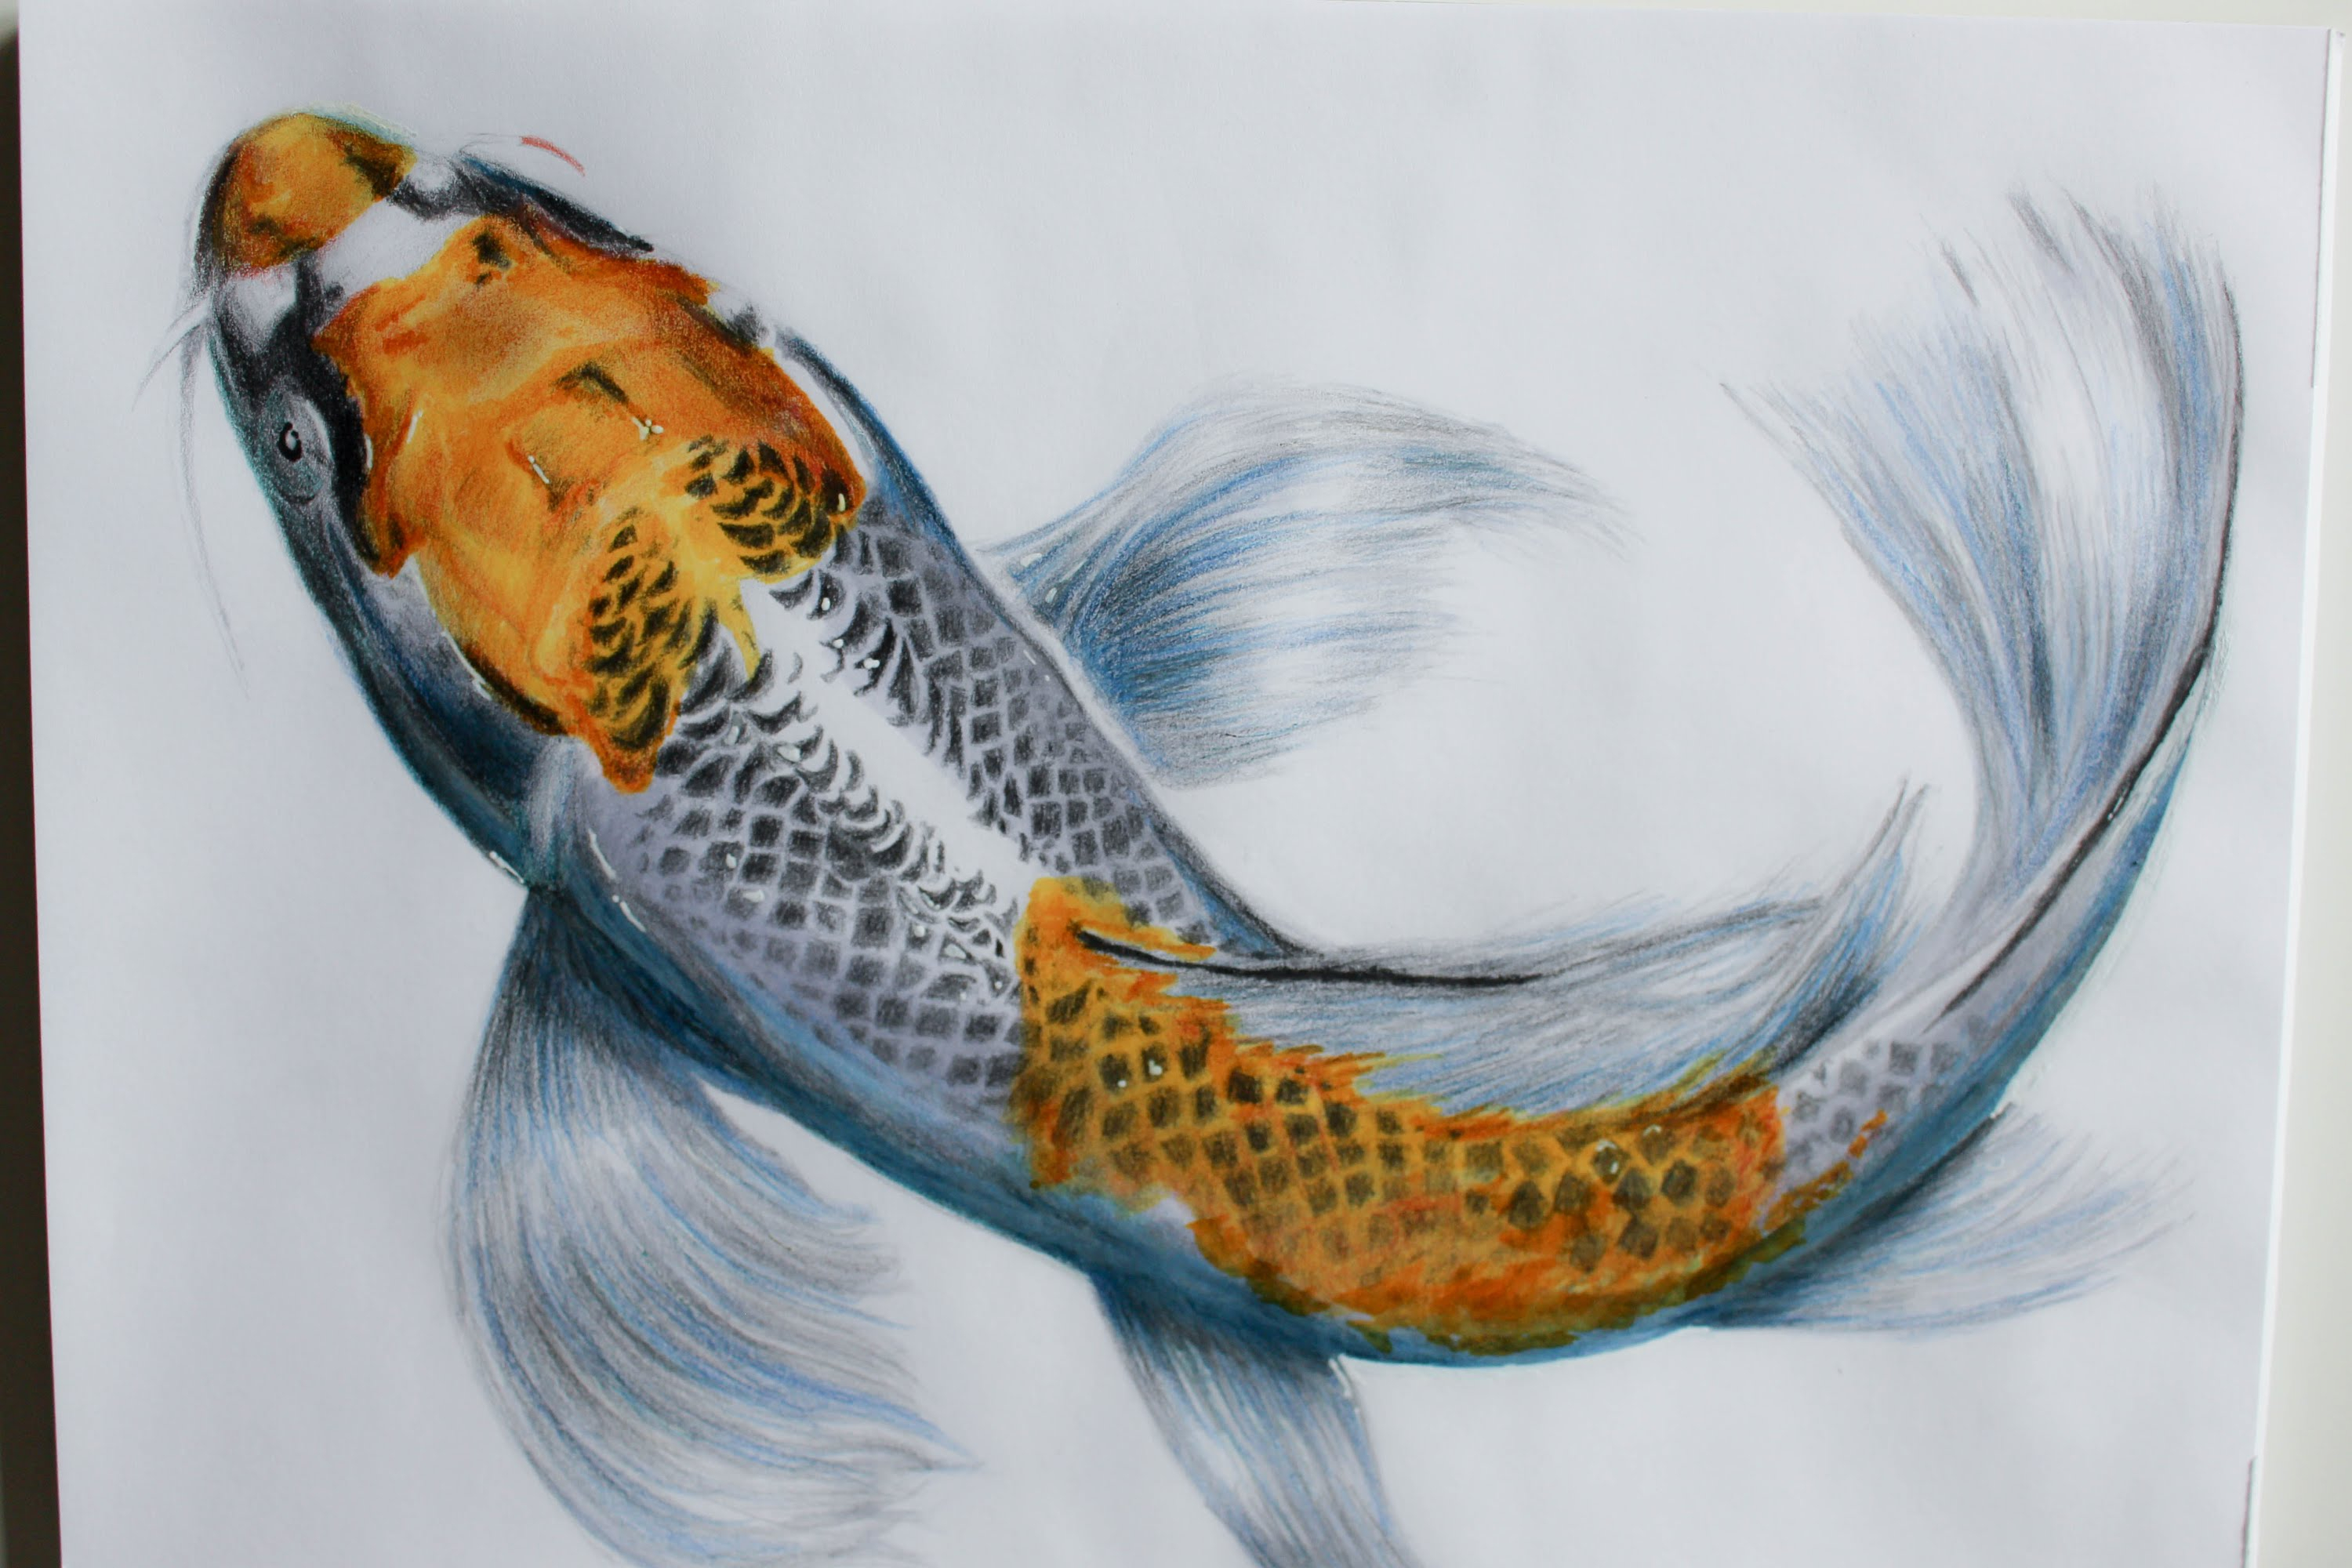 It's just a graphic of Playful Realistic Fish Drawing